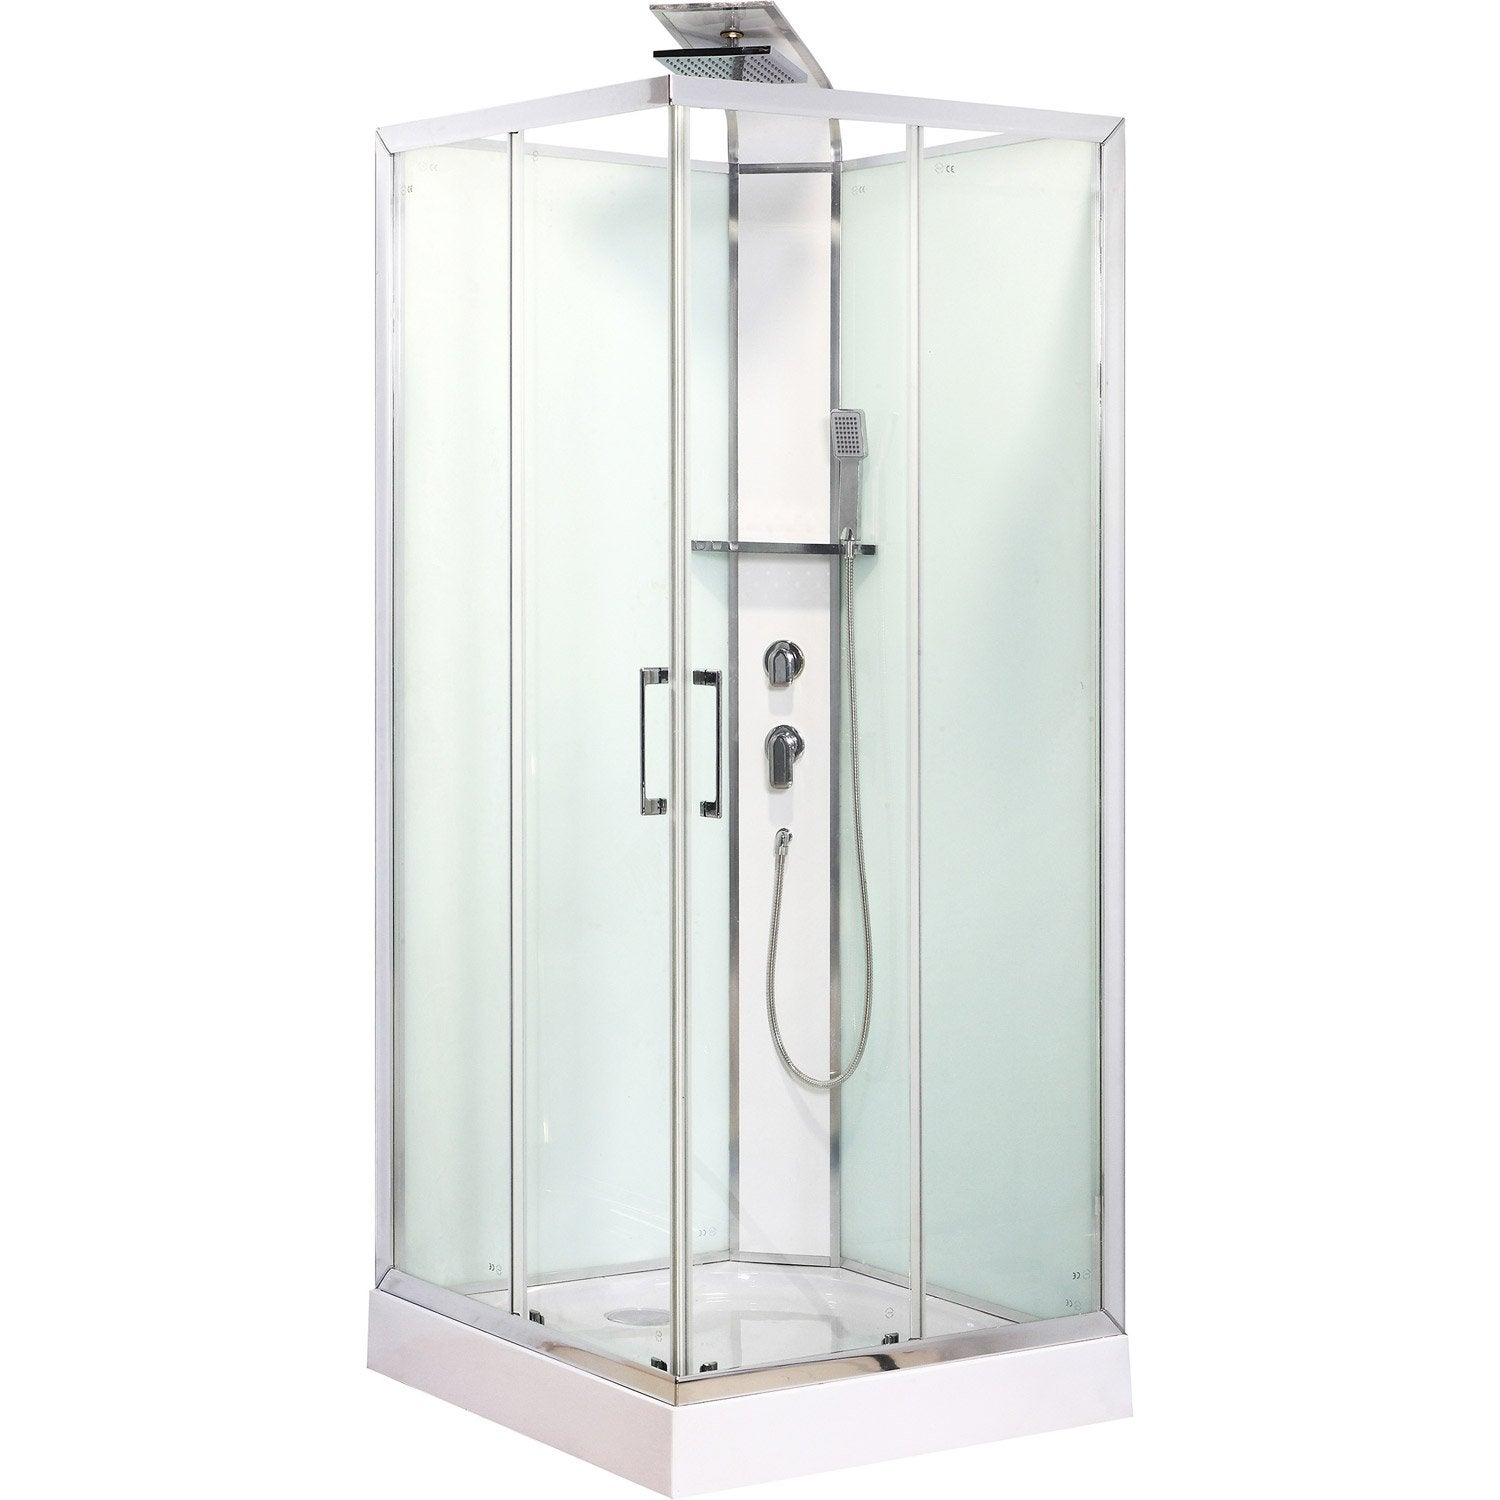 Cabine de douche carr 80x80 cm remix leroy merlin for Leroy merlin colonne de douche